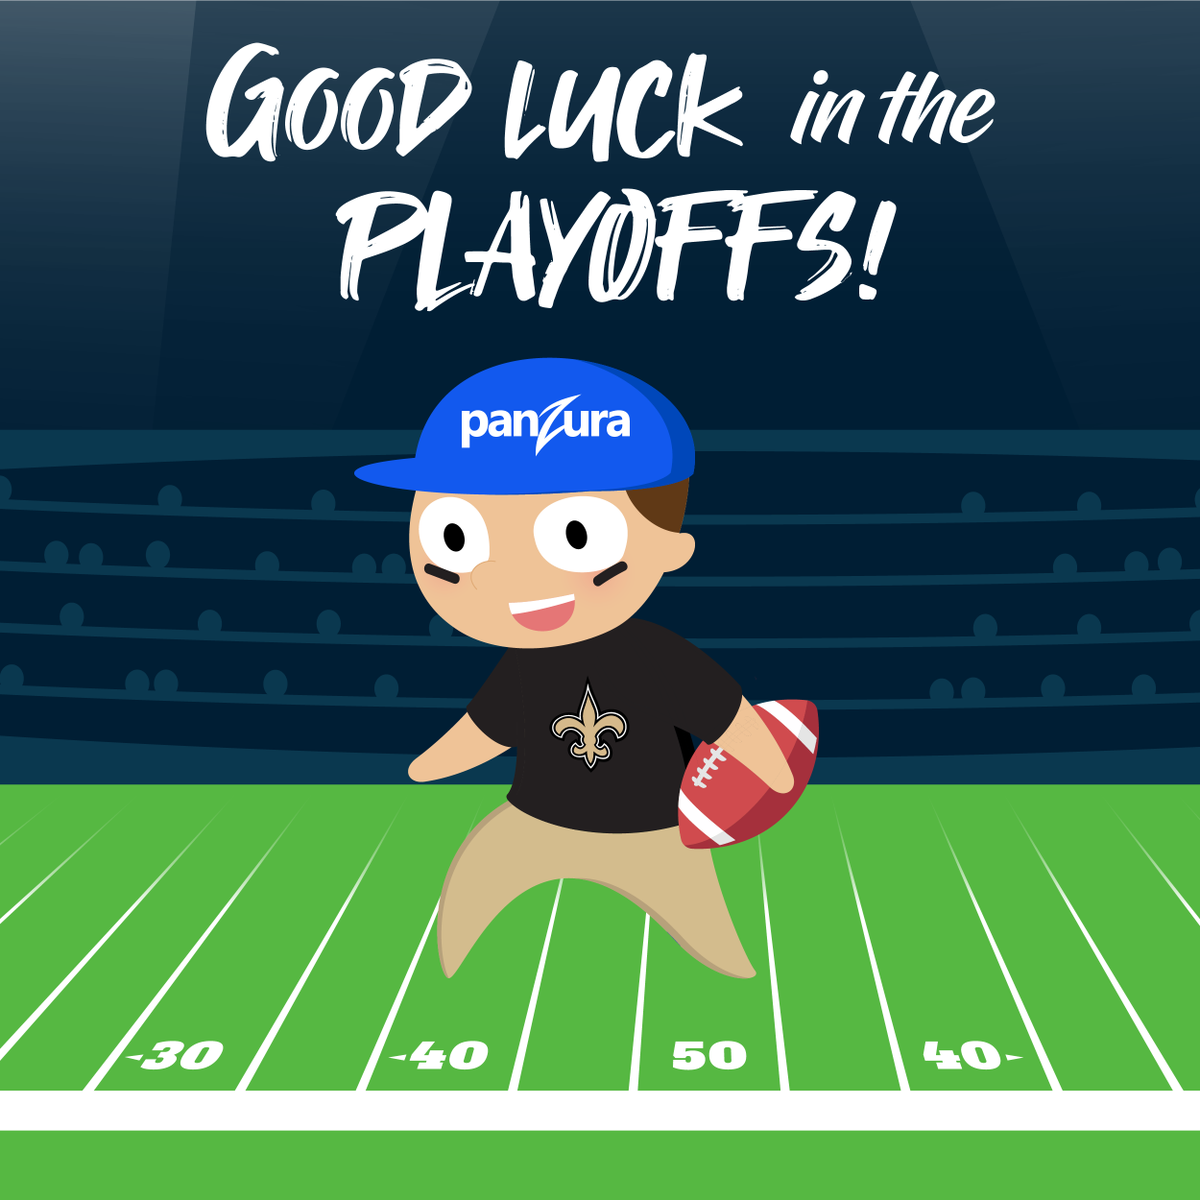 Who dat? Fastest players on the field, dat's who!   Very proud official hybrid cloud sponsor, right here   GO @Saints GO!  💪  ⚜️ 🏆 https://t.co/ftjn1c11Go